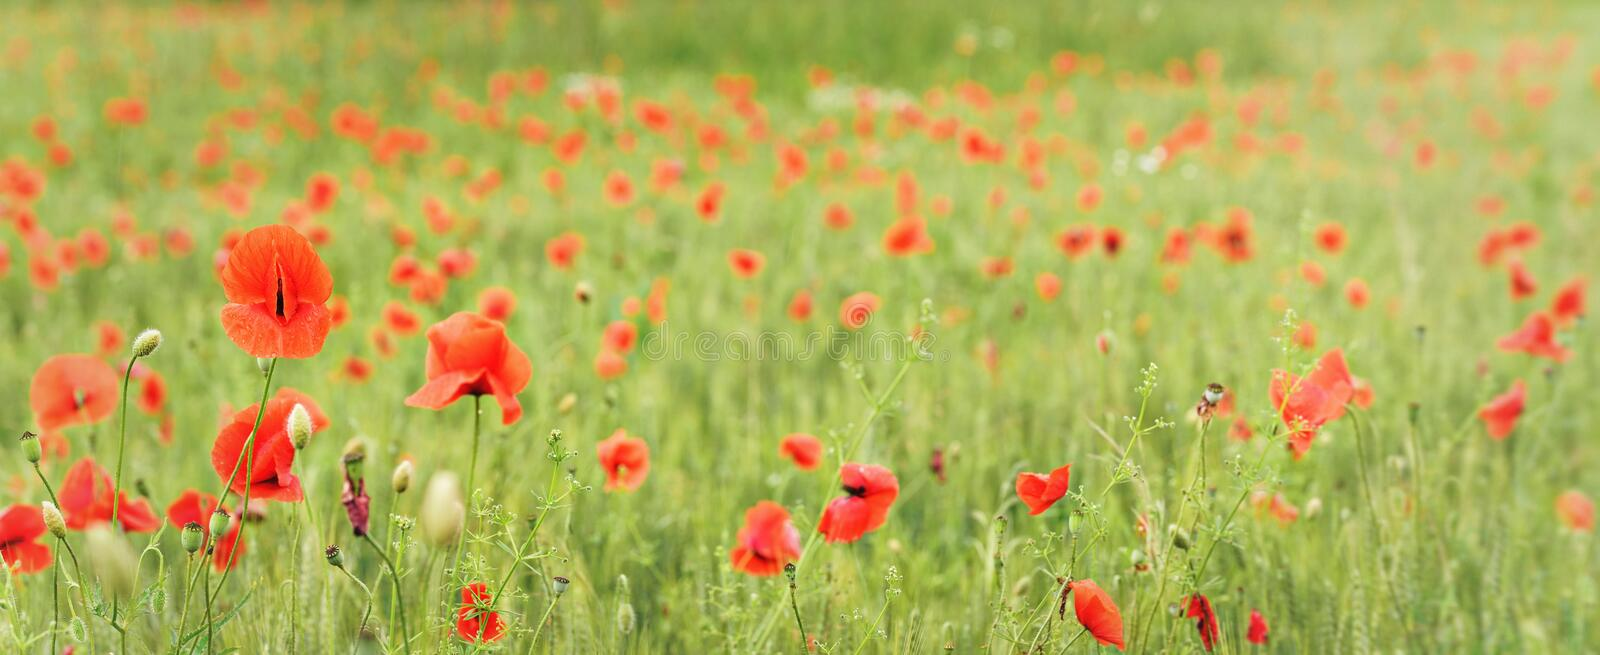 Wild red poppies growing in green wheat field, wide panorama banner royalty free stock photos